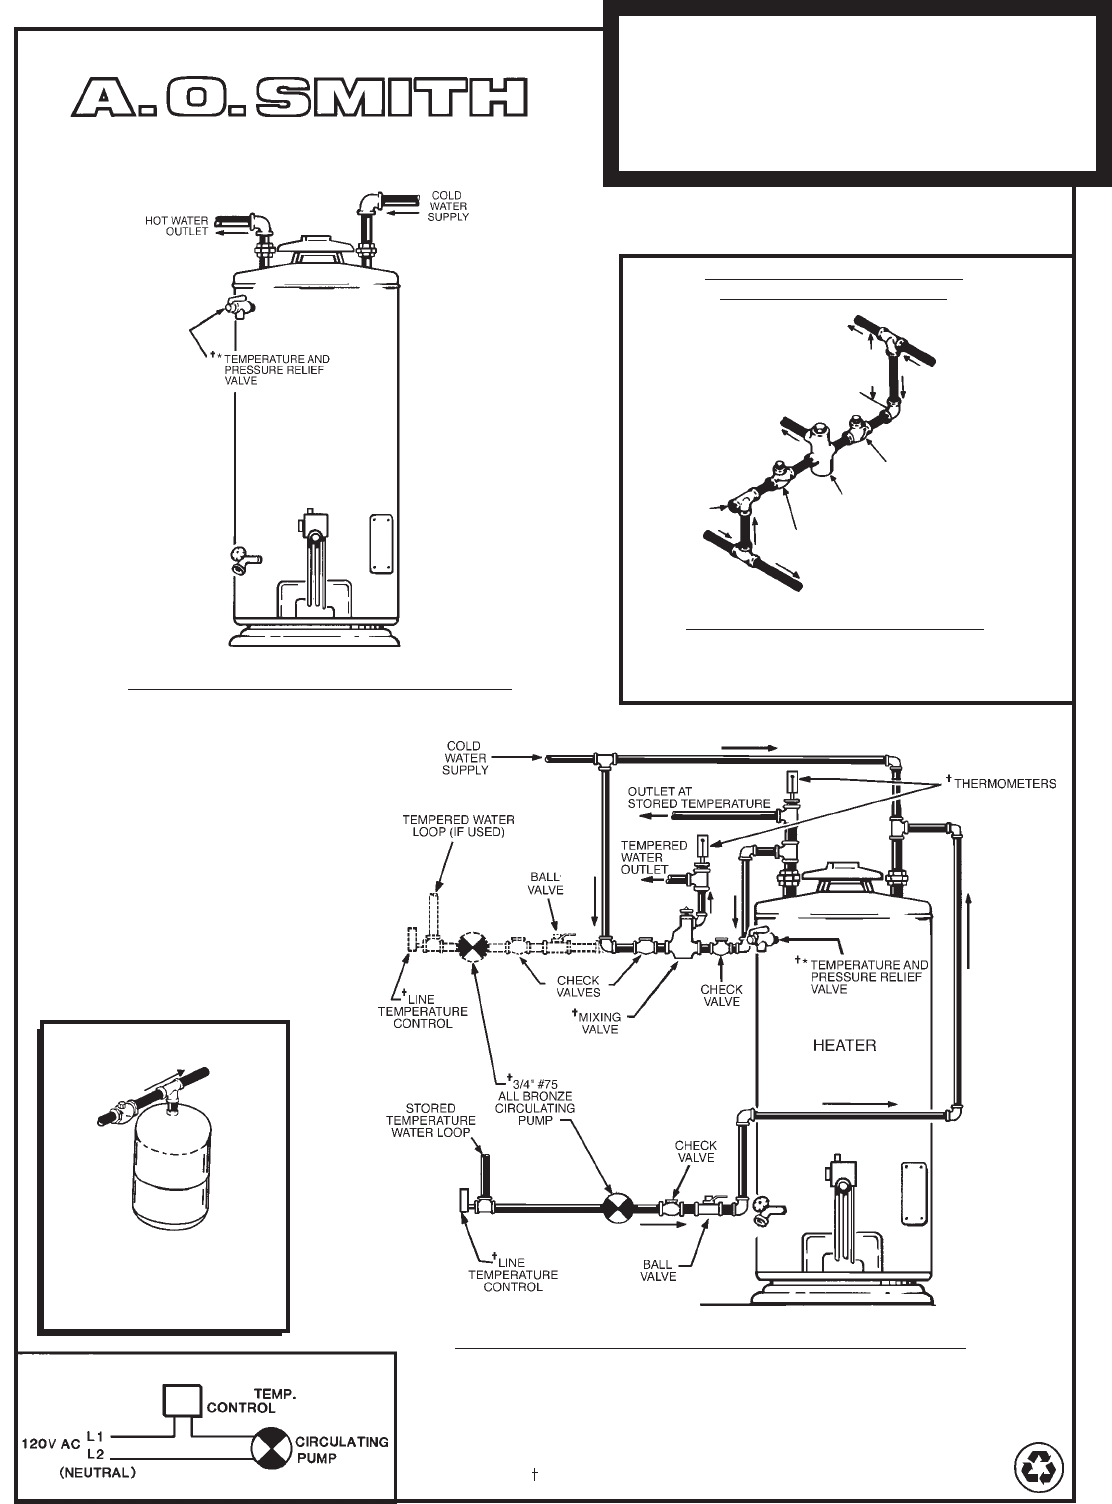 Ge Water Heater Thermostat Wiring Diagram